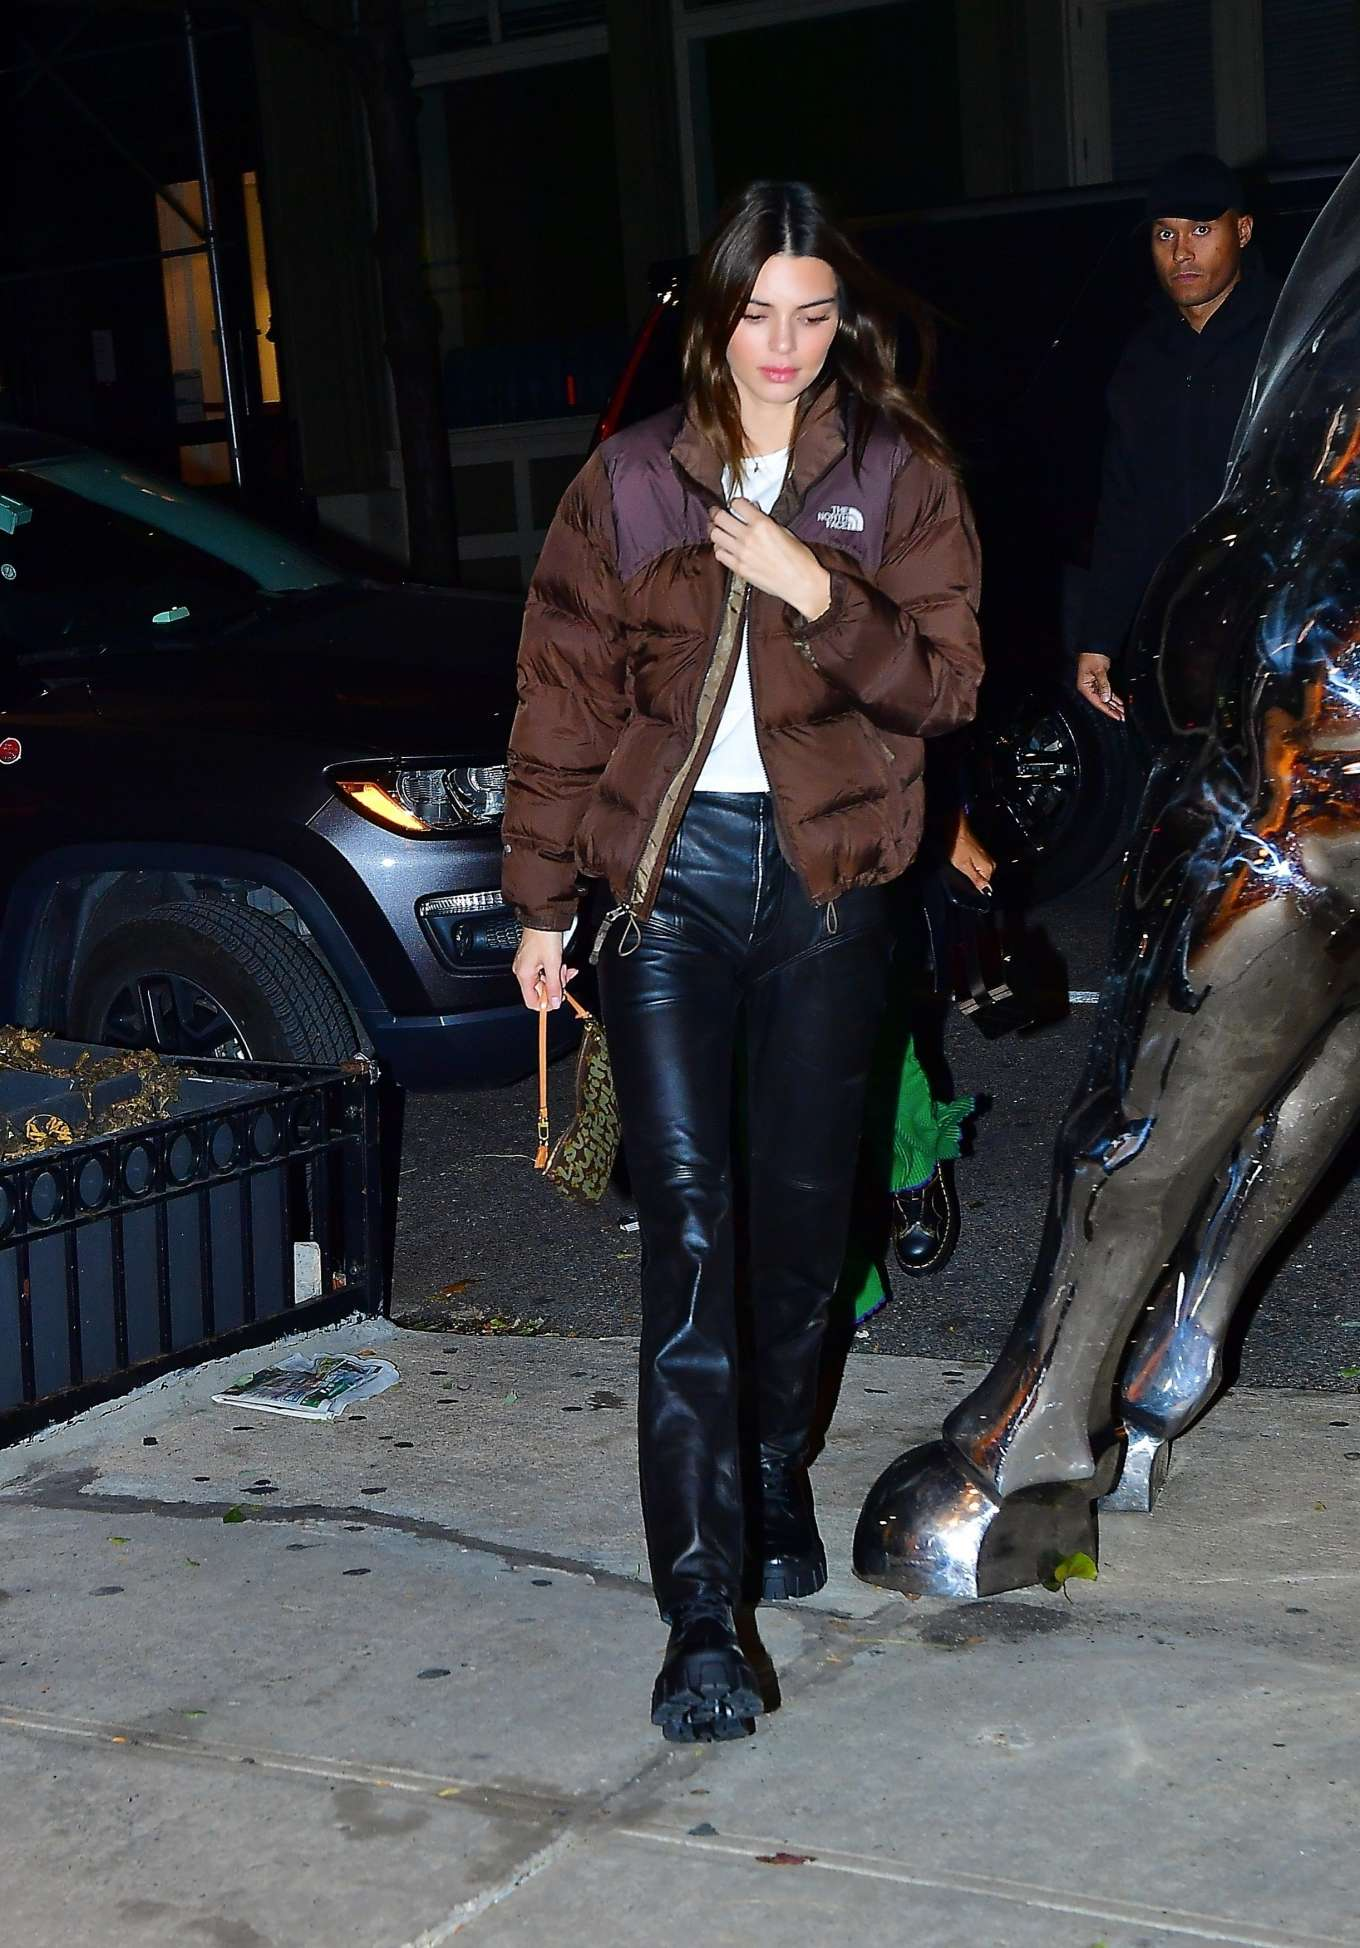 Kendall Jenner donning a Brown quilted The North face puffer jacket with full sleeves, quilted and a high neck